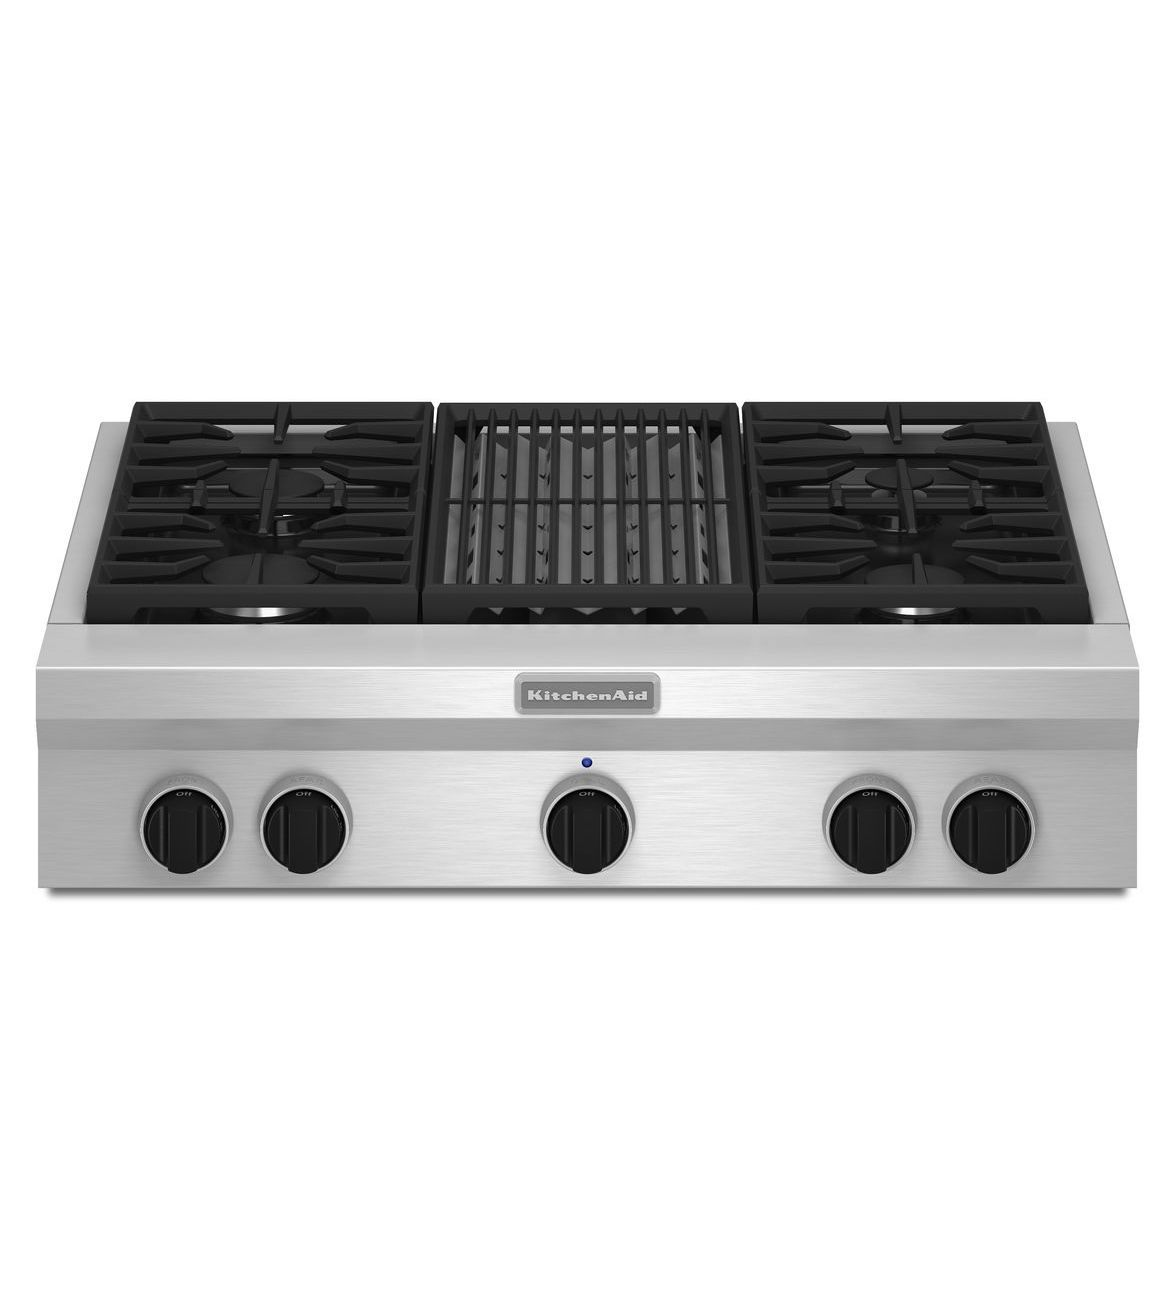 Prime Kitchenaid 36 Inch 4 Burner With Grill Gas Rangetop Interior Design Ideas Tzicisoteloinfo